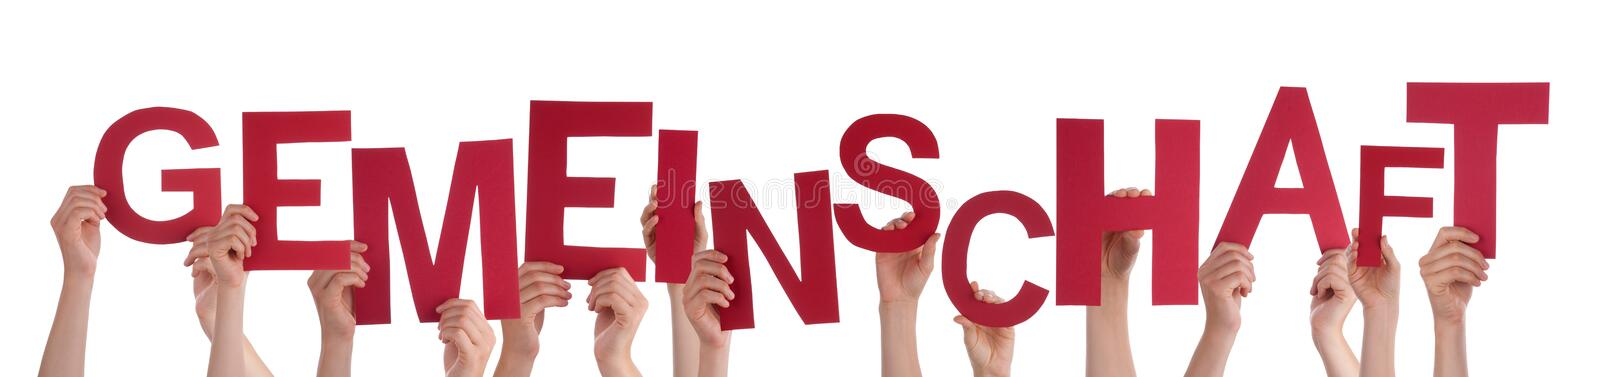 People Holding Word Gemeinschaft Means Community. Many Caucasian People And Hands Holding Red Letters Or Characters Building The Isolated German Word stock image